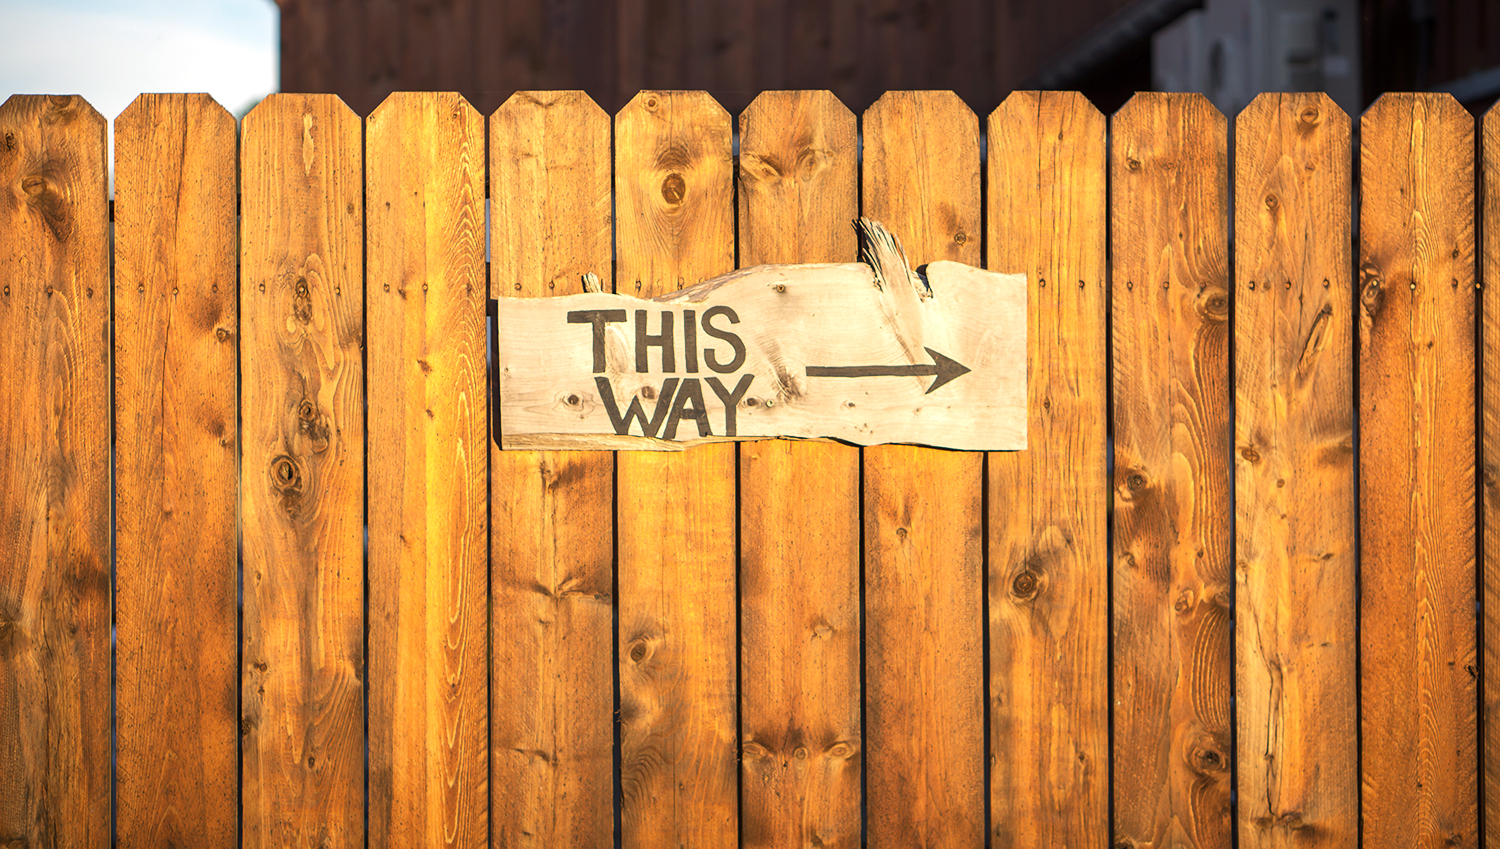 this way sign on fence.jpg